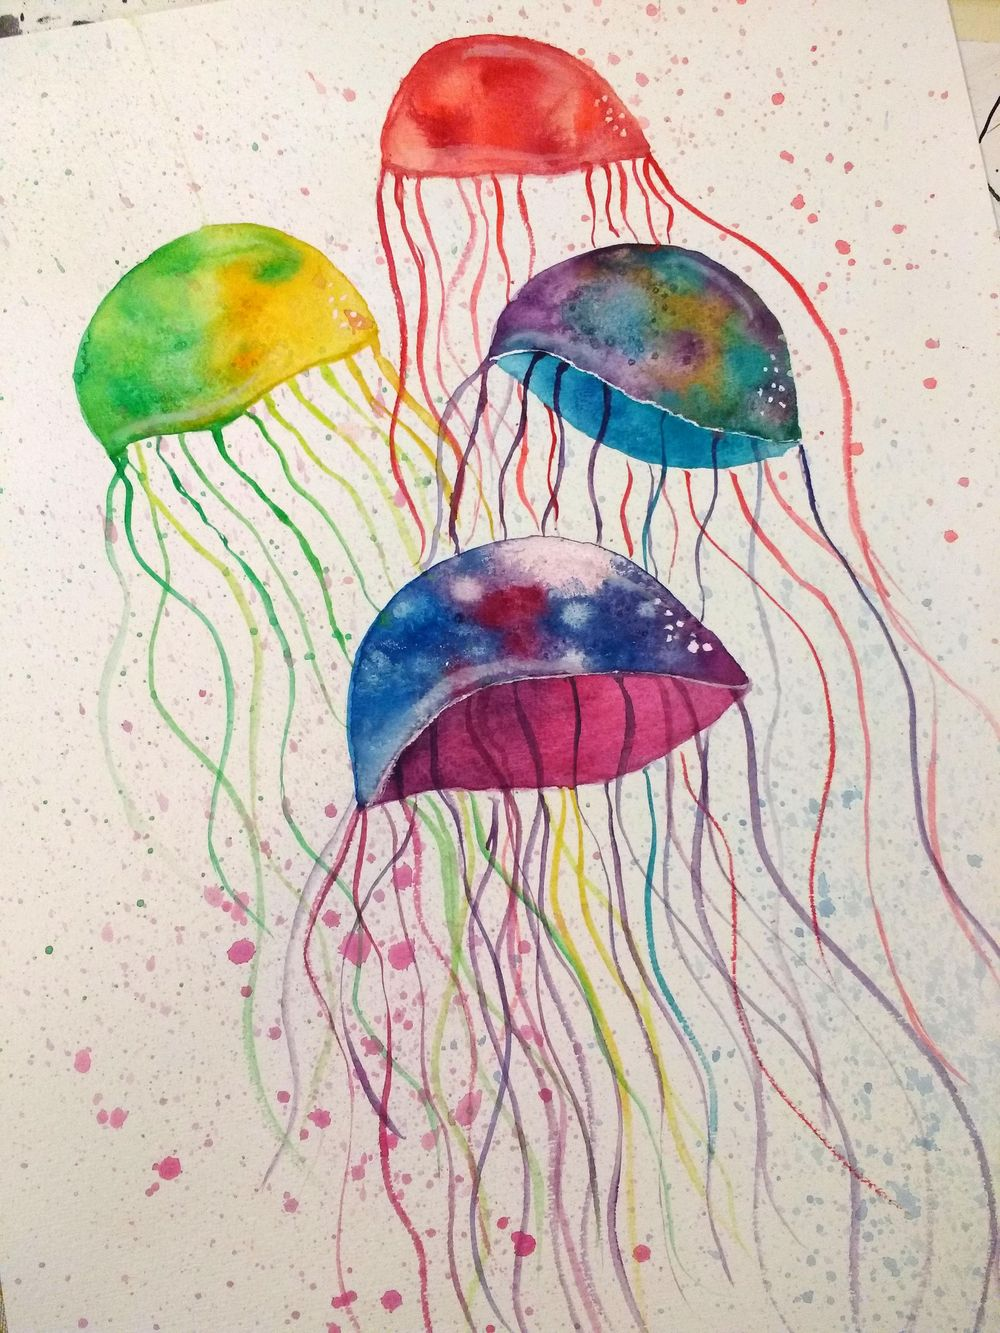 Jelly jelly galaxy  - image 2 - student project